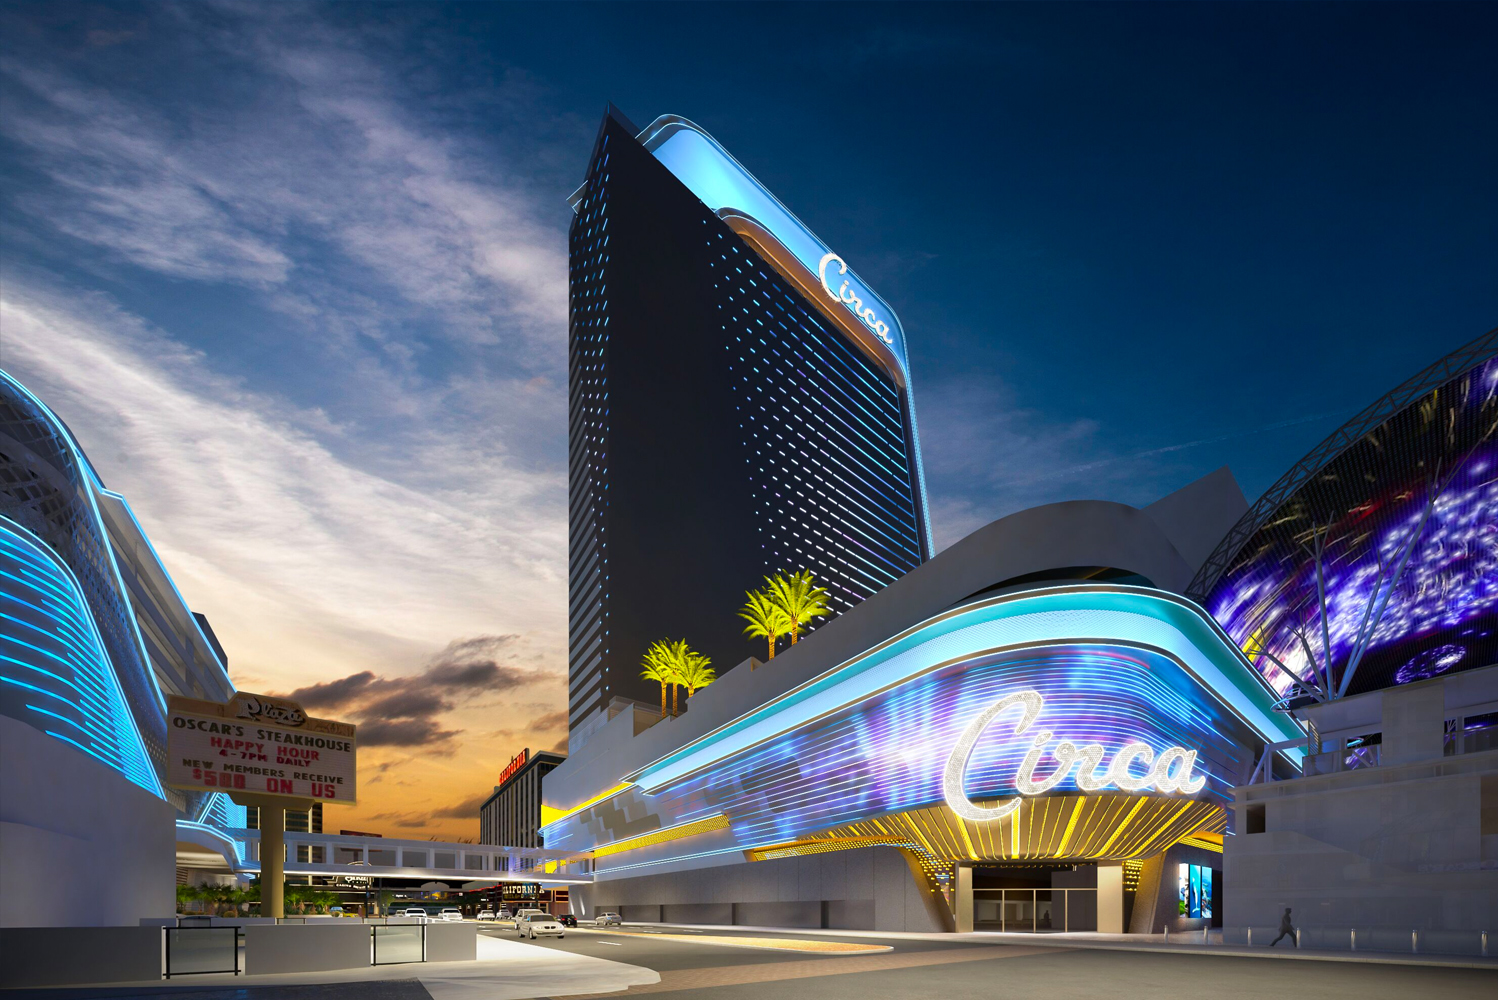 Located on the Fremont Street Experience, the 1.25 million-square-foot, 777-room property will stand as the tallest structure north of the Las Vegas Strip.